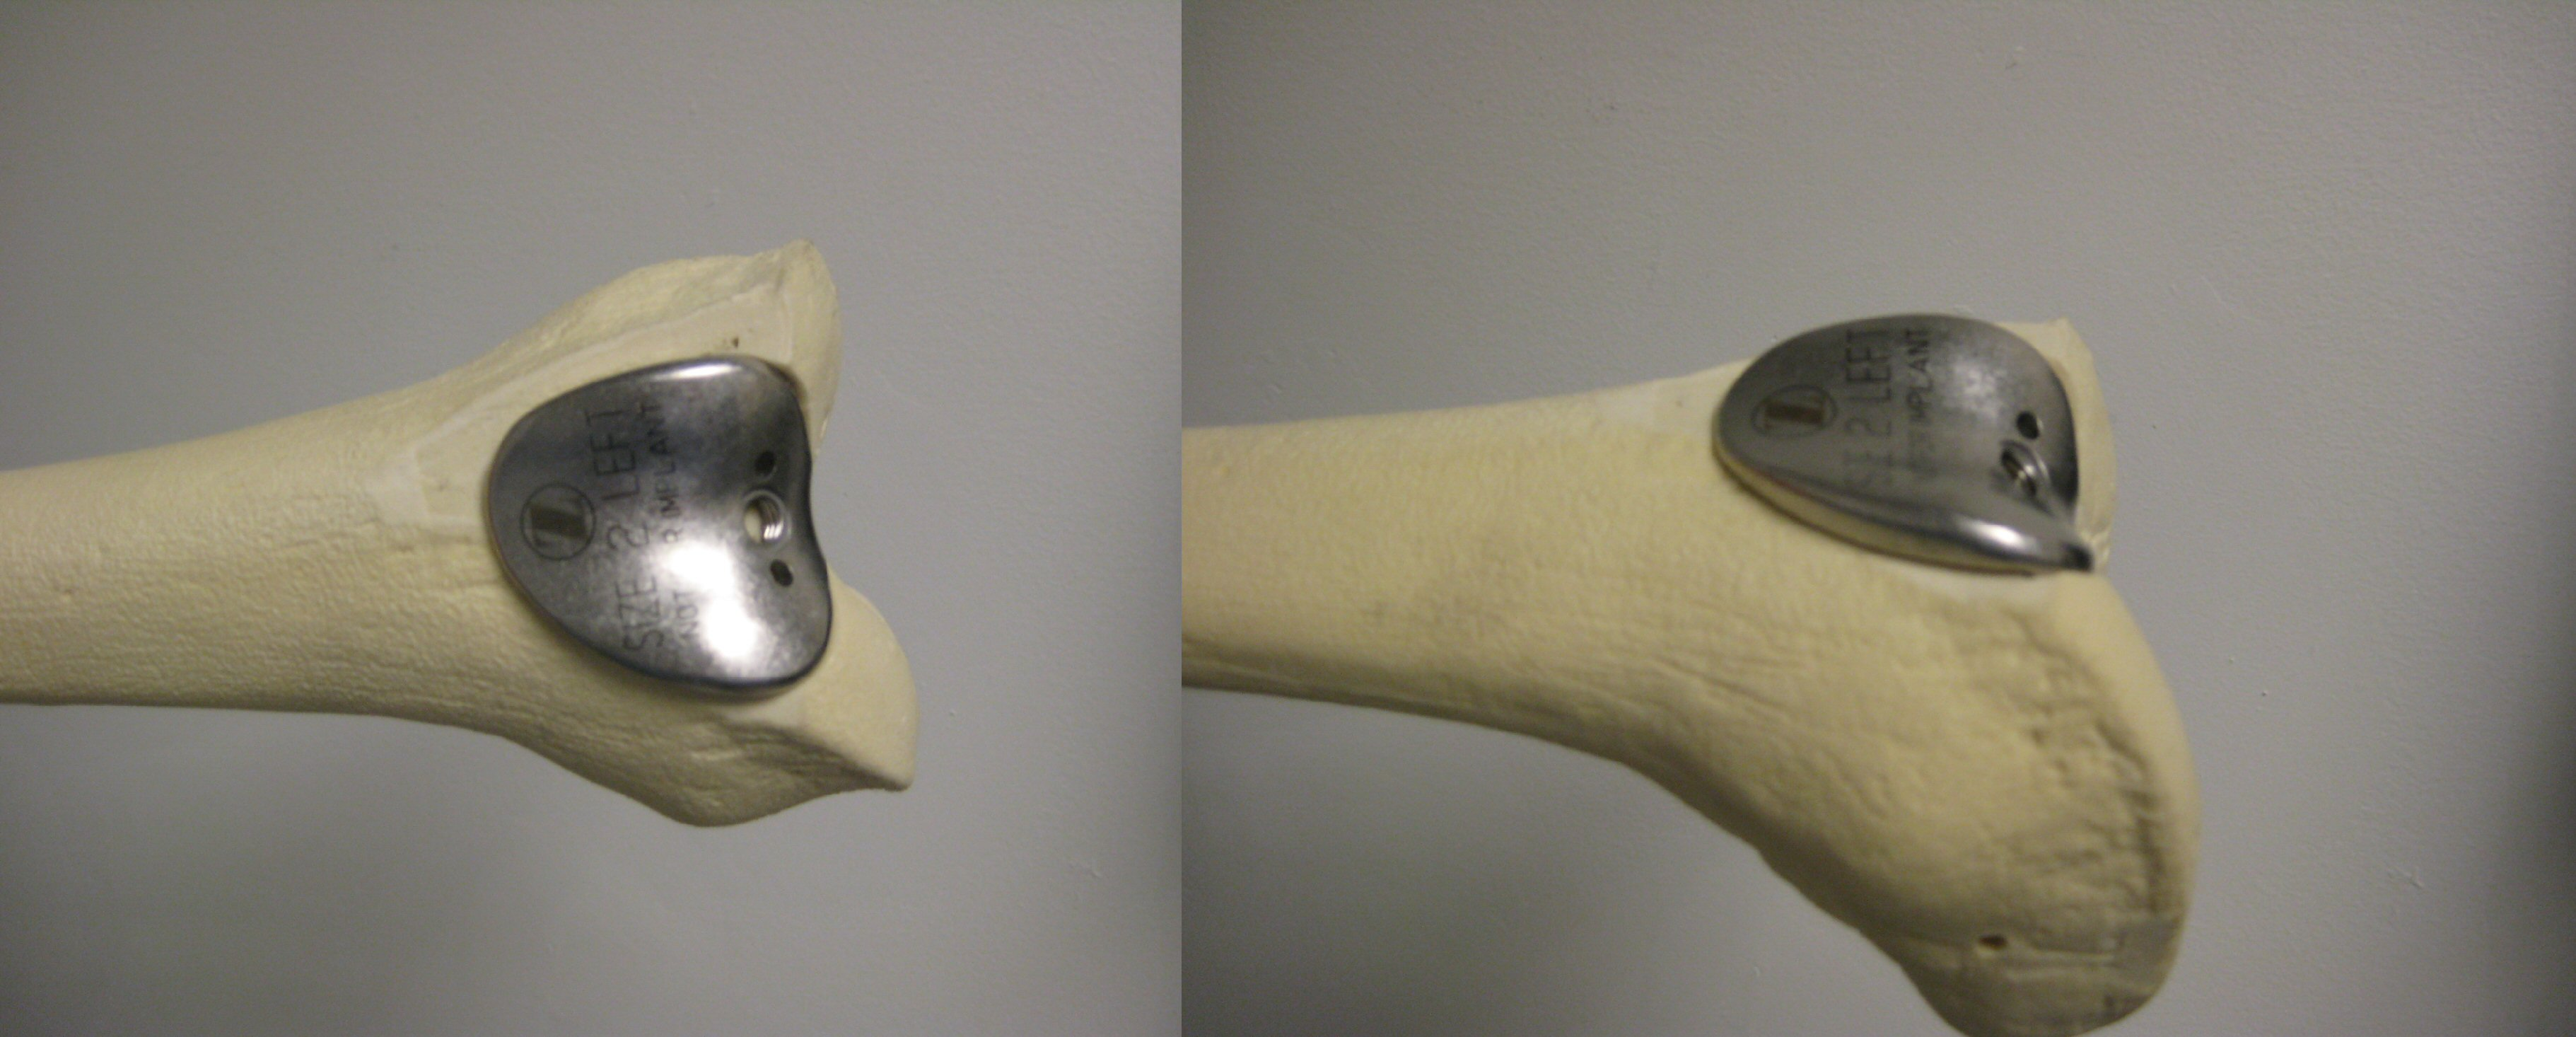 Patellofemoral Knee Replacement Implant